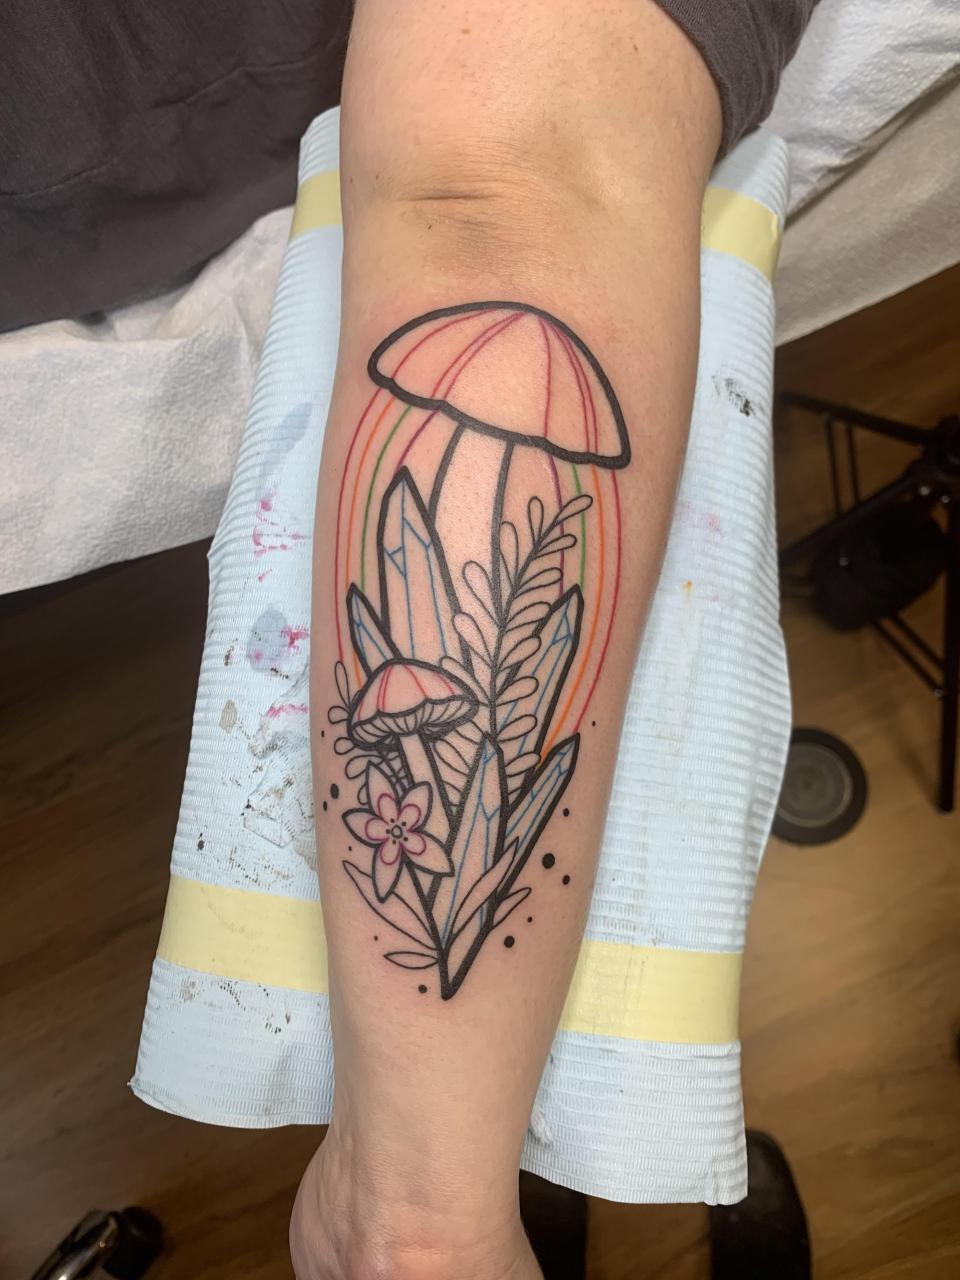 Got the line work done yesterday, color and shading next month. Just wanted to show the design!